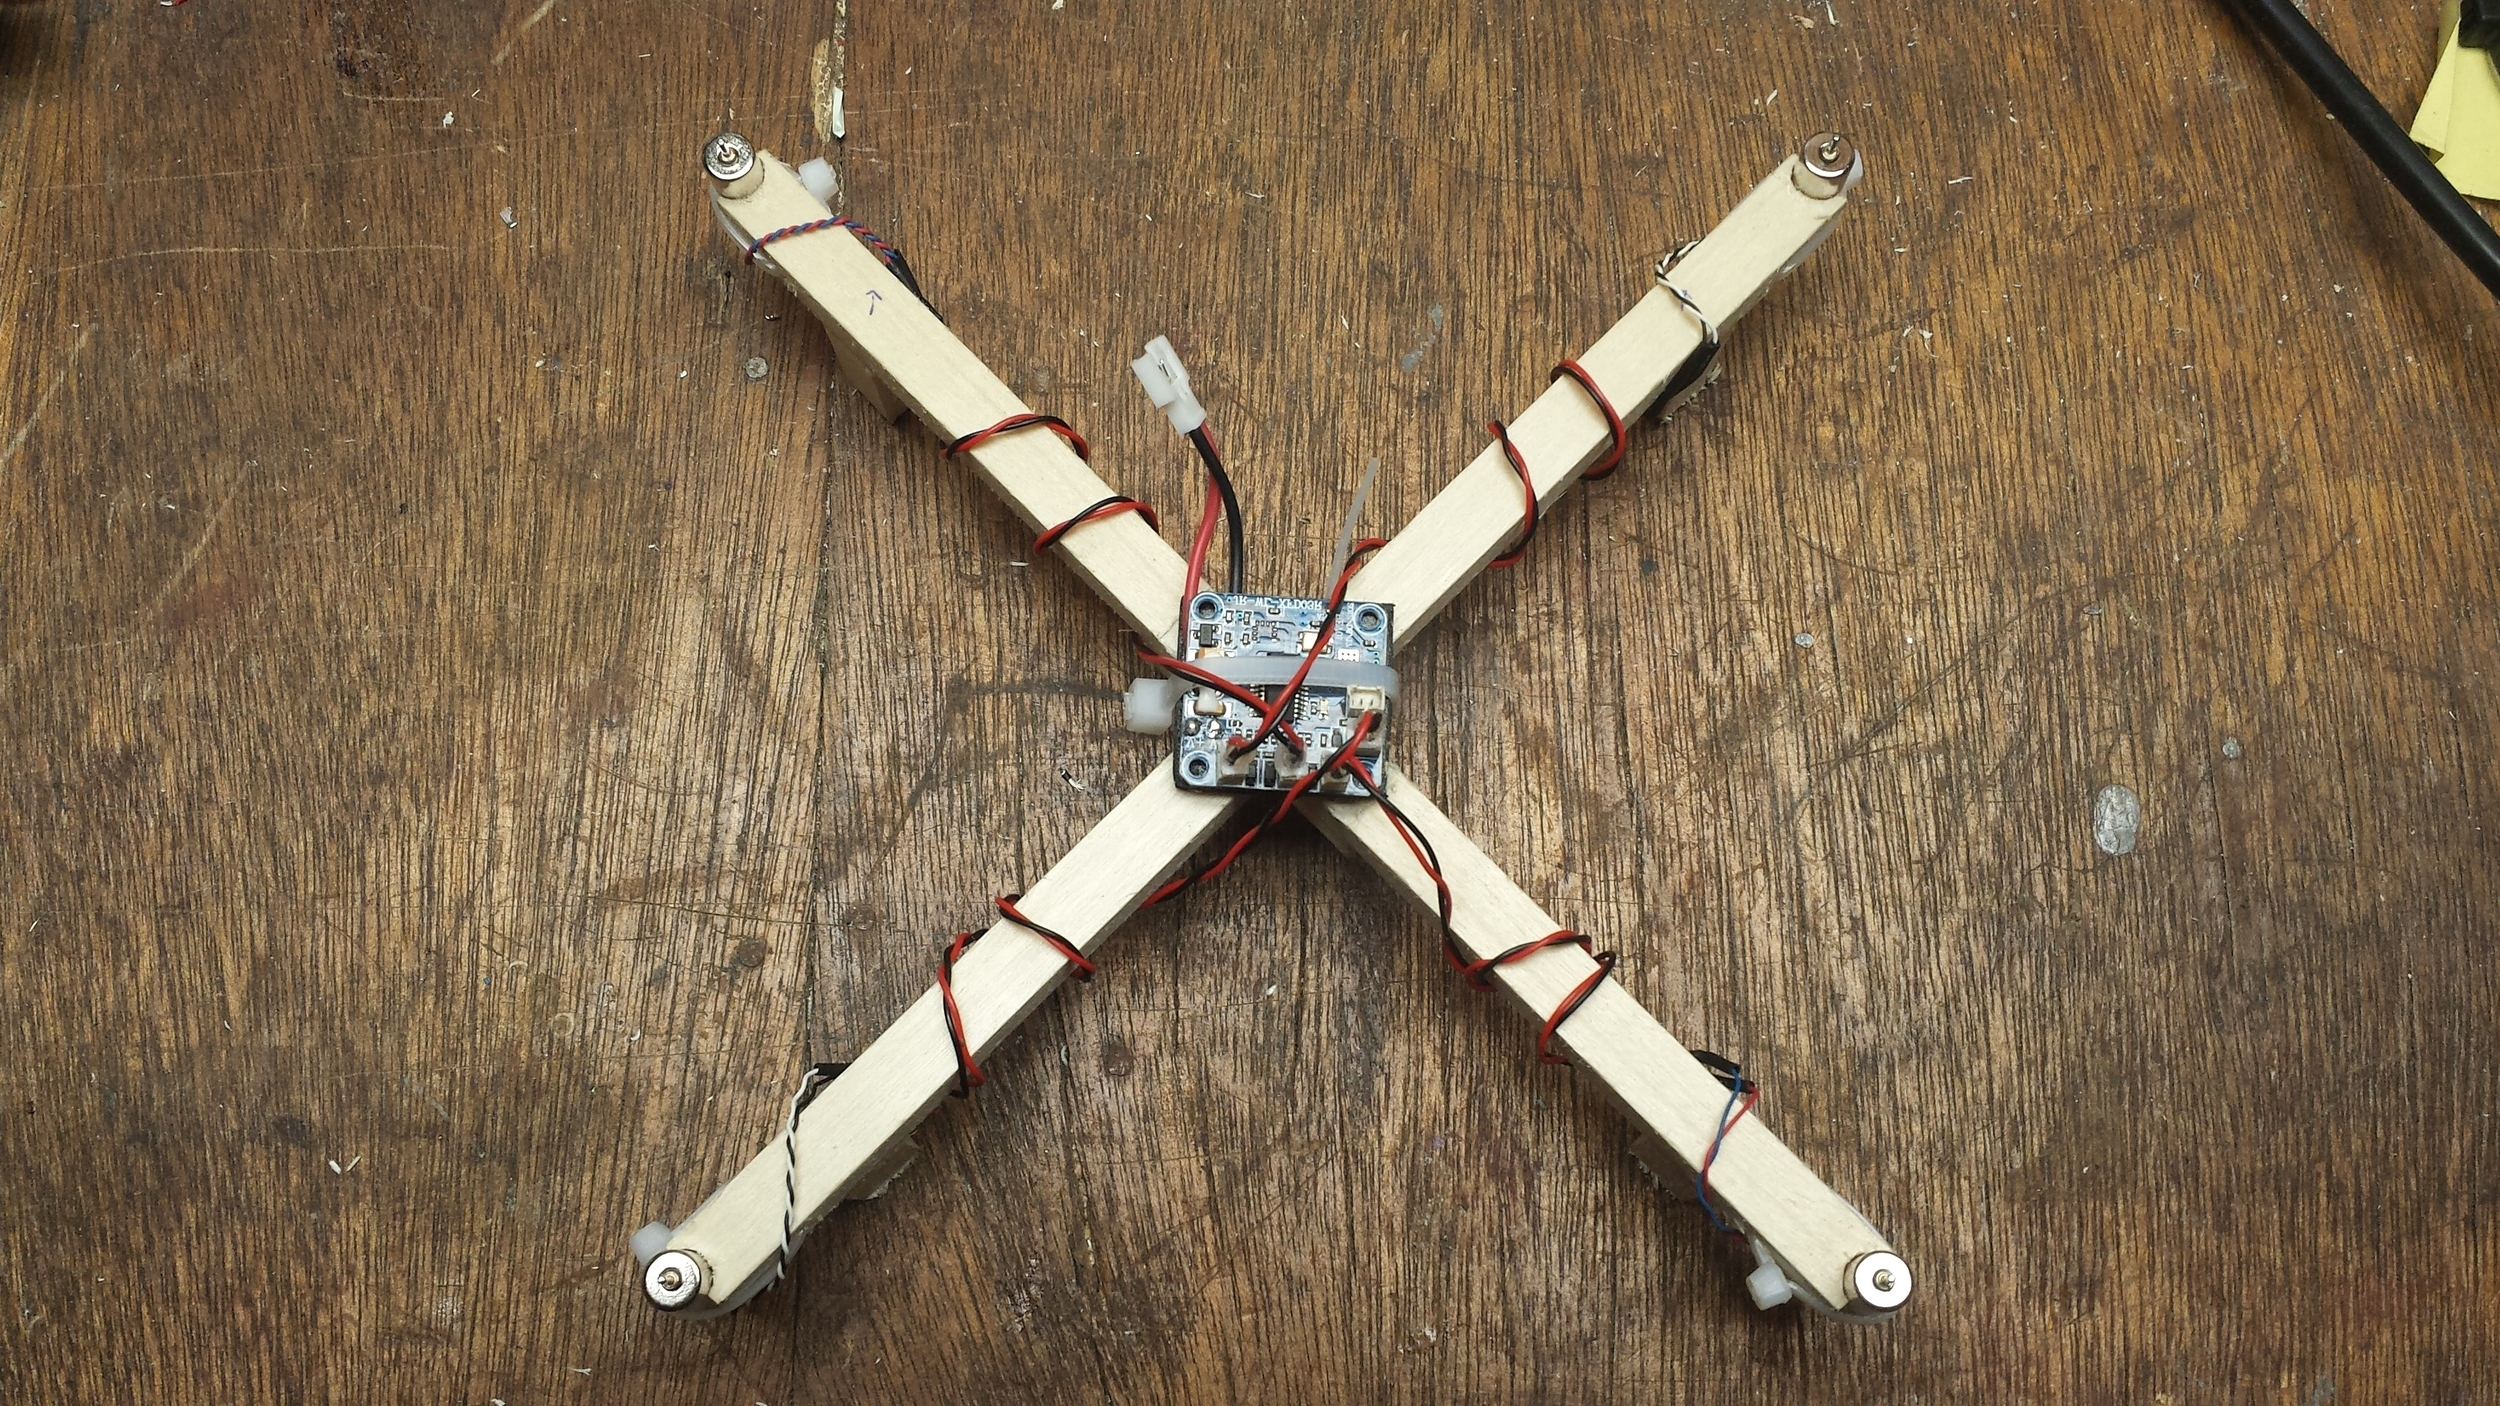 Wires Wrapped and Connected to Flight Controller